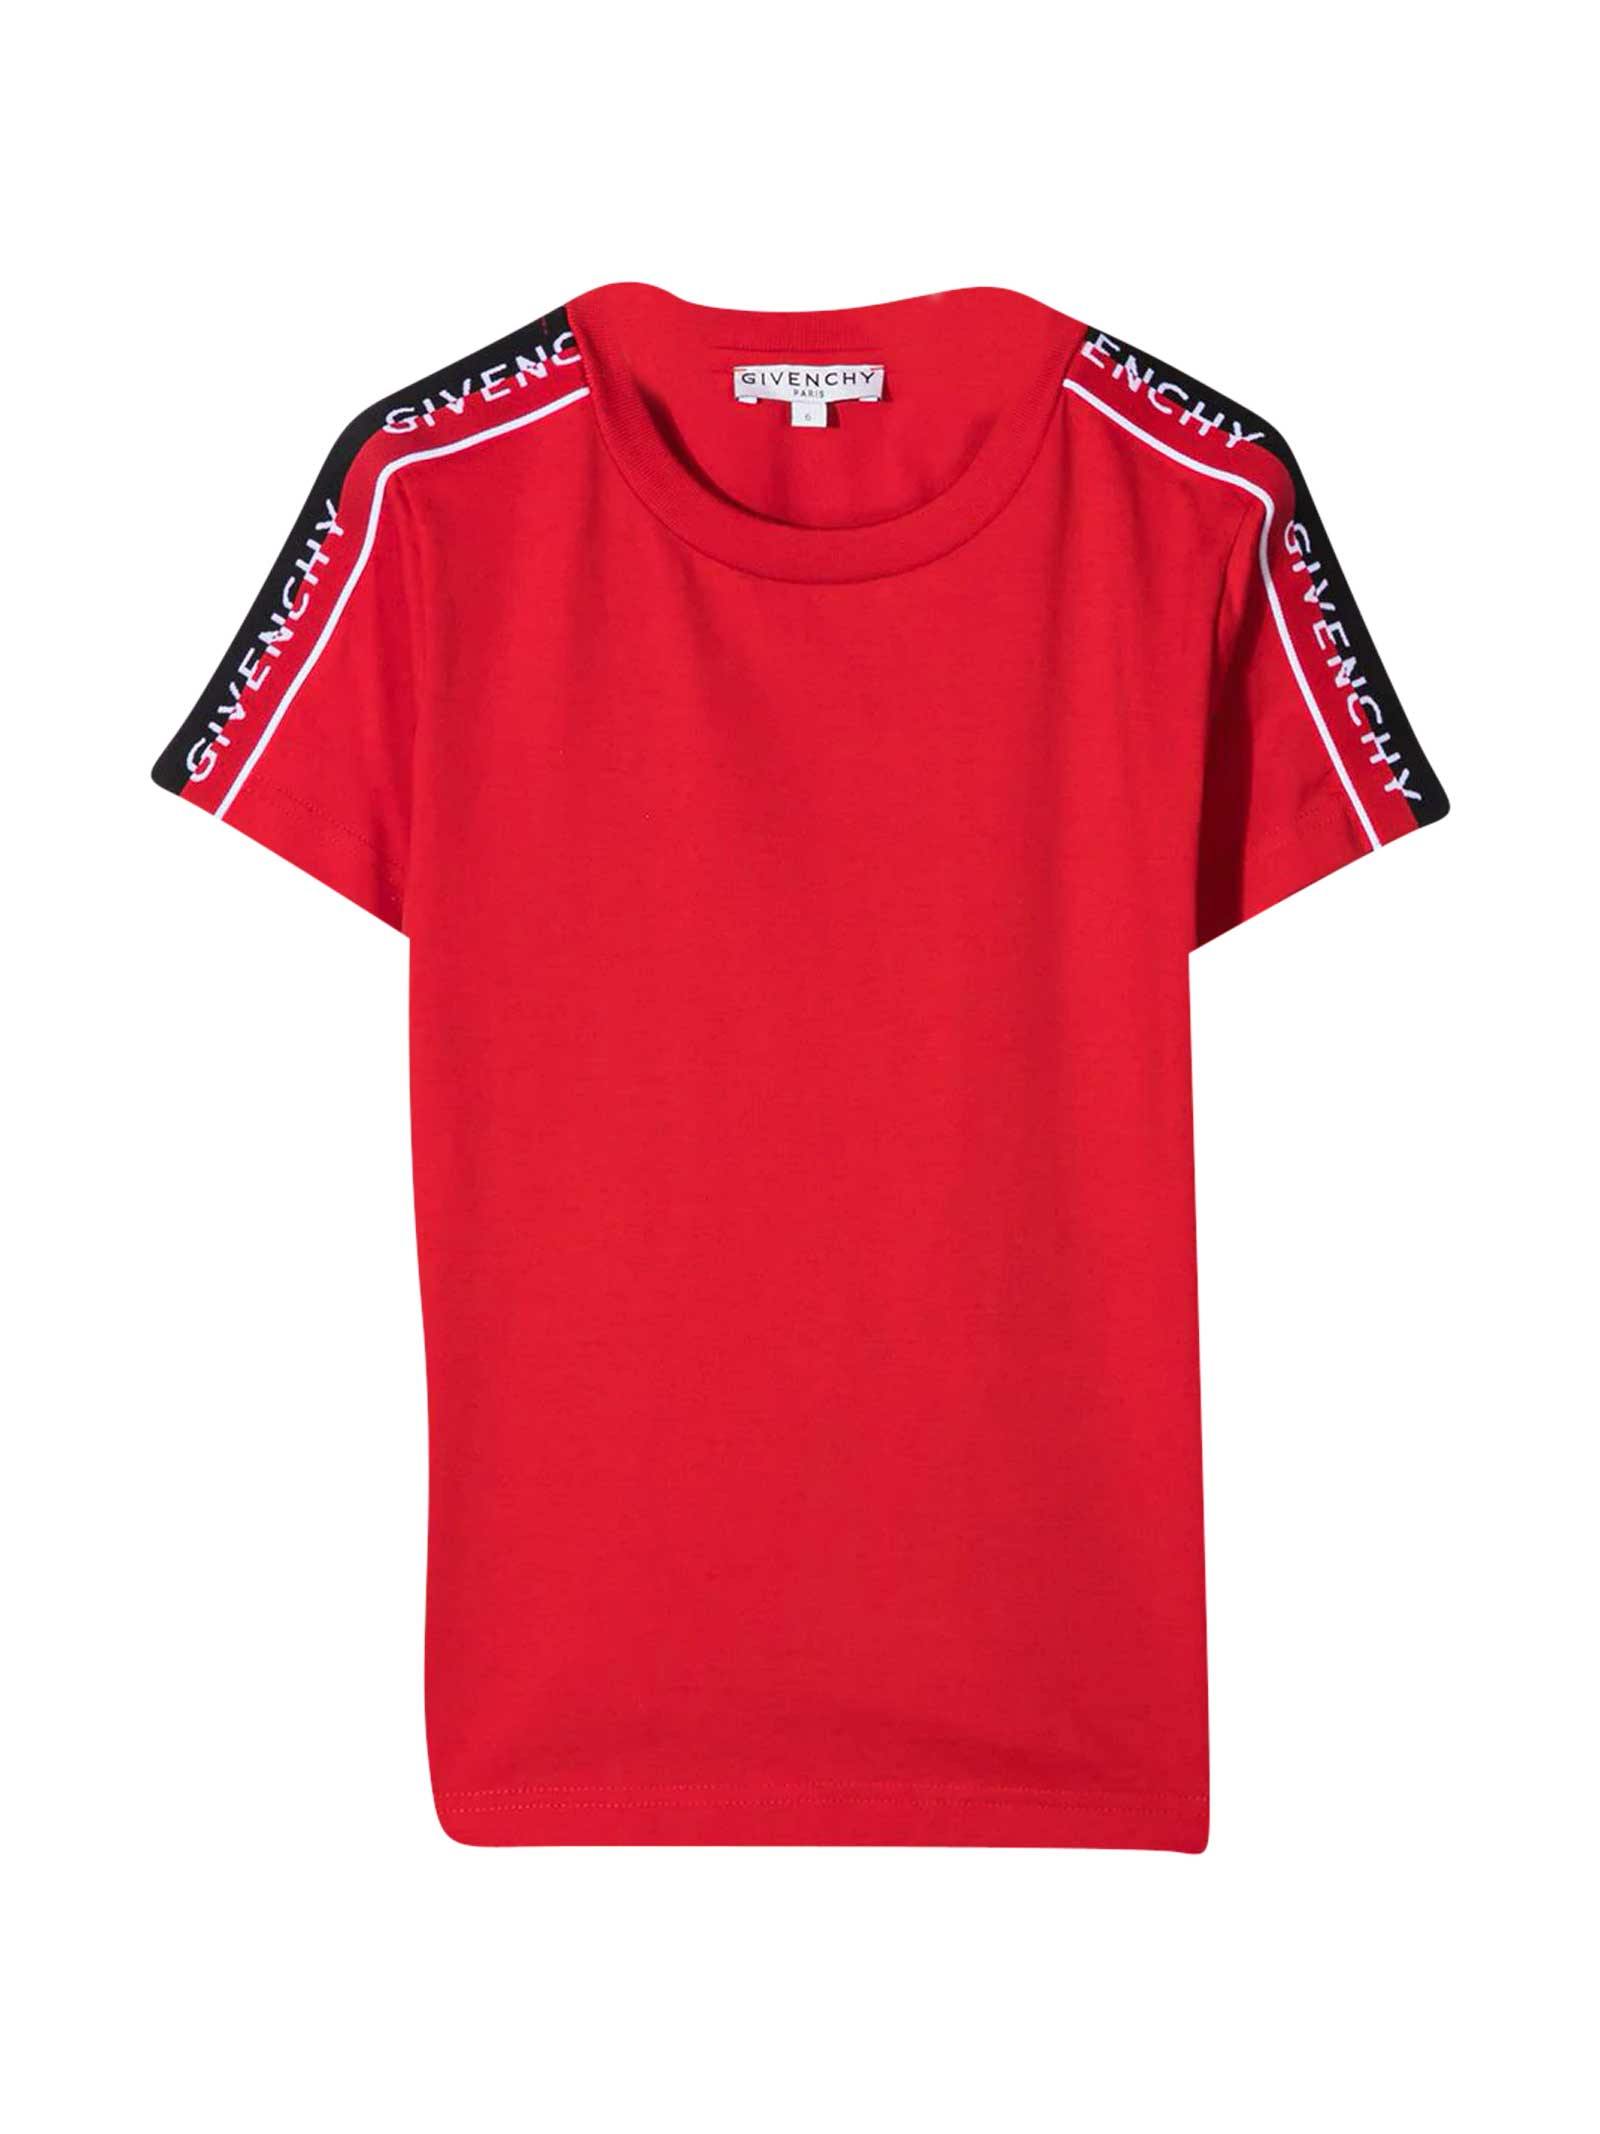 Givenchy Kids Cotton T-shirt In Rosso